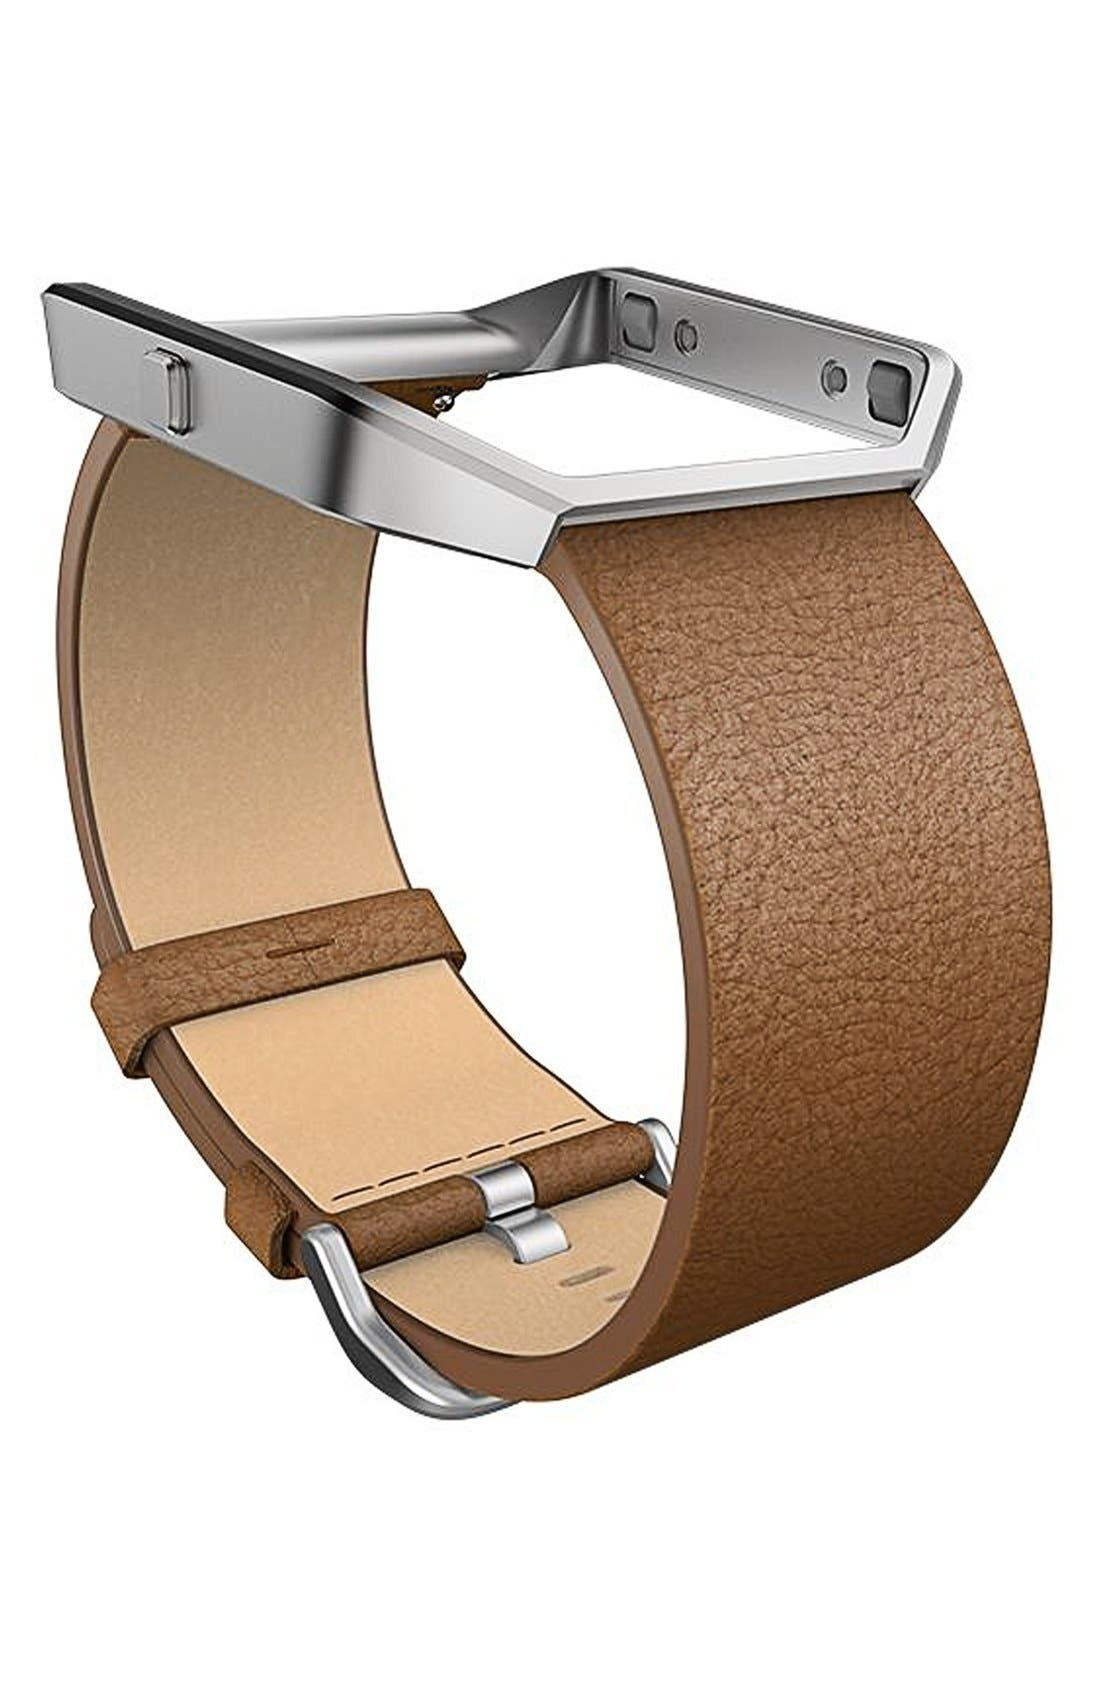 Main Image - Fitbit Blaze Leather Smart Watch Band